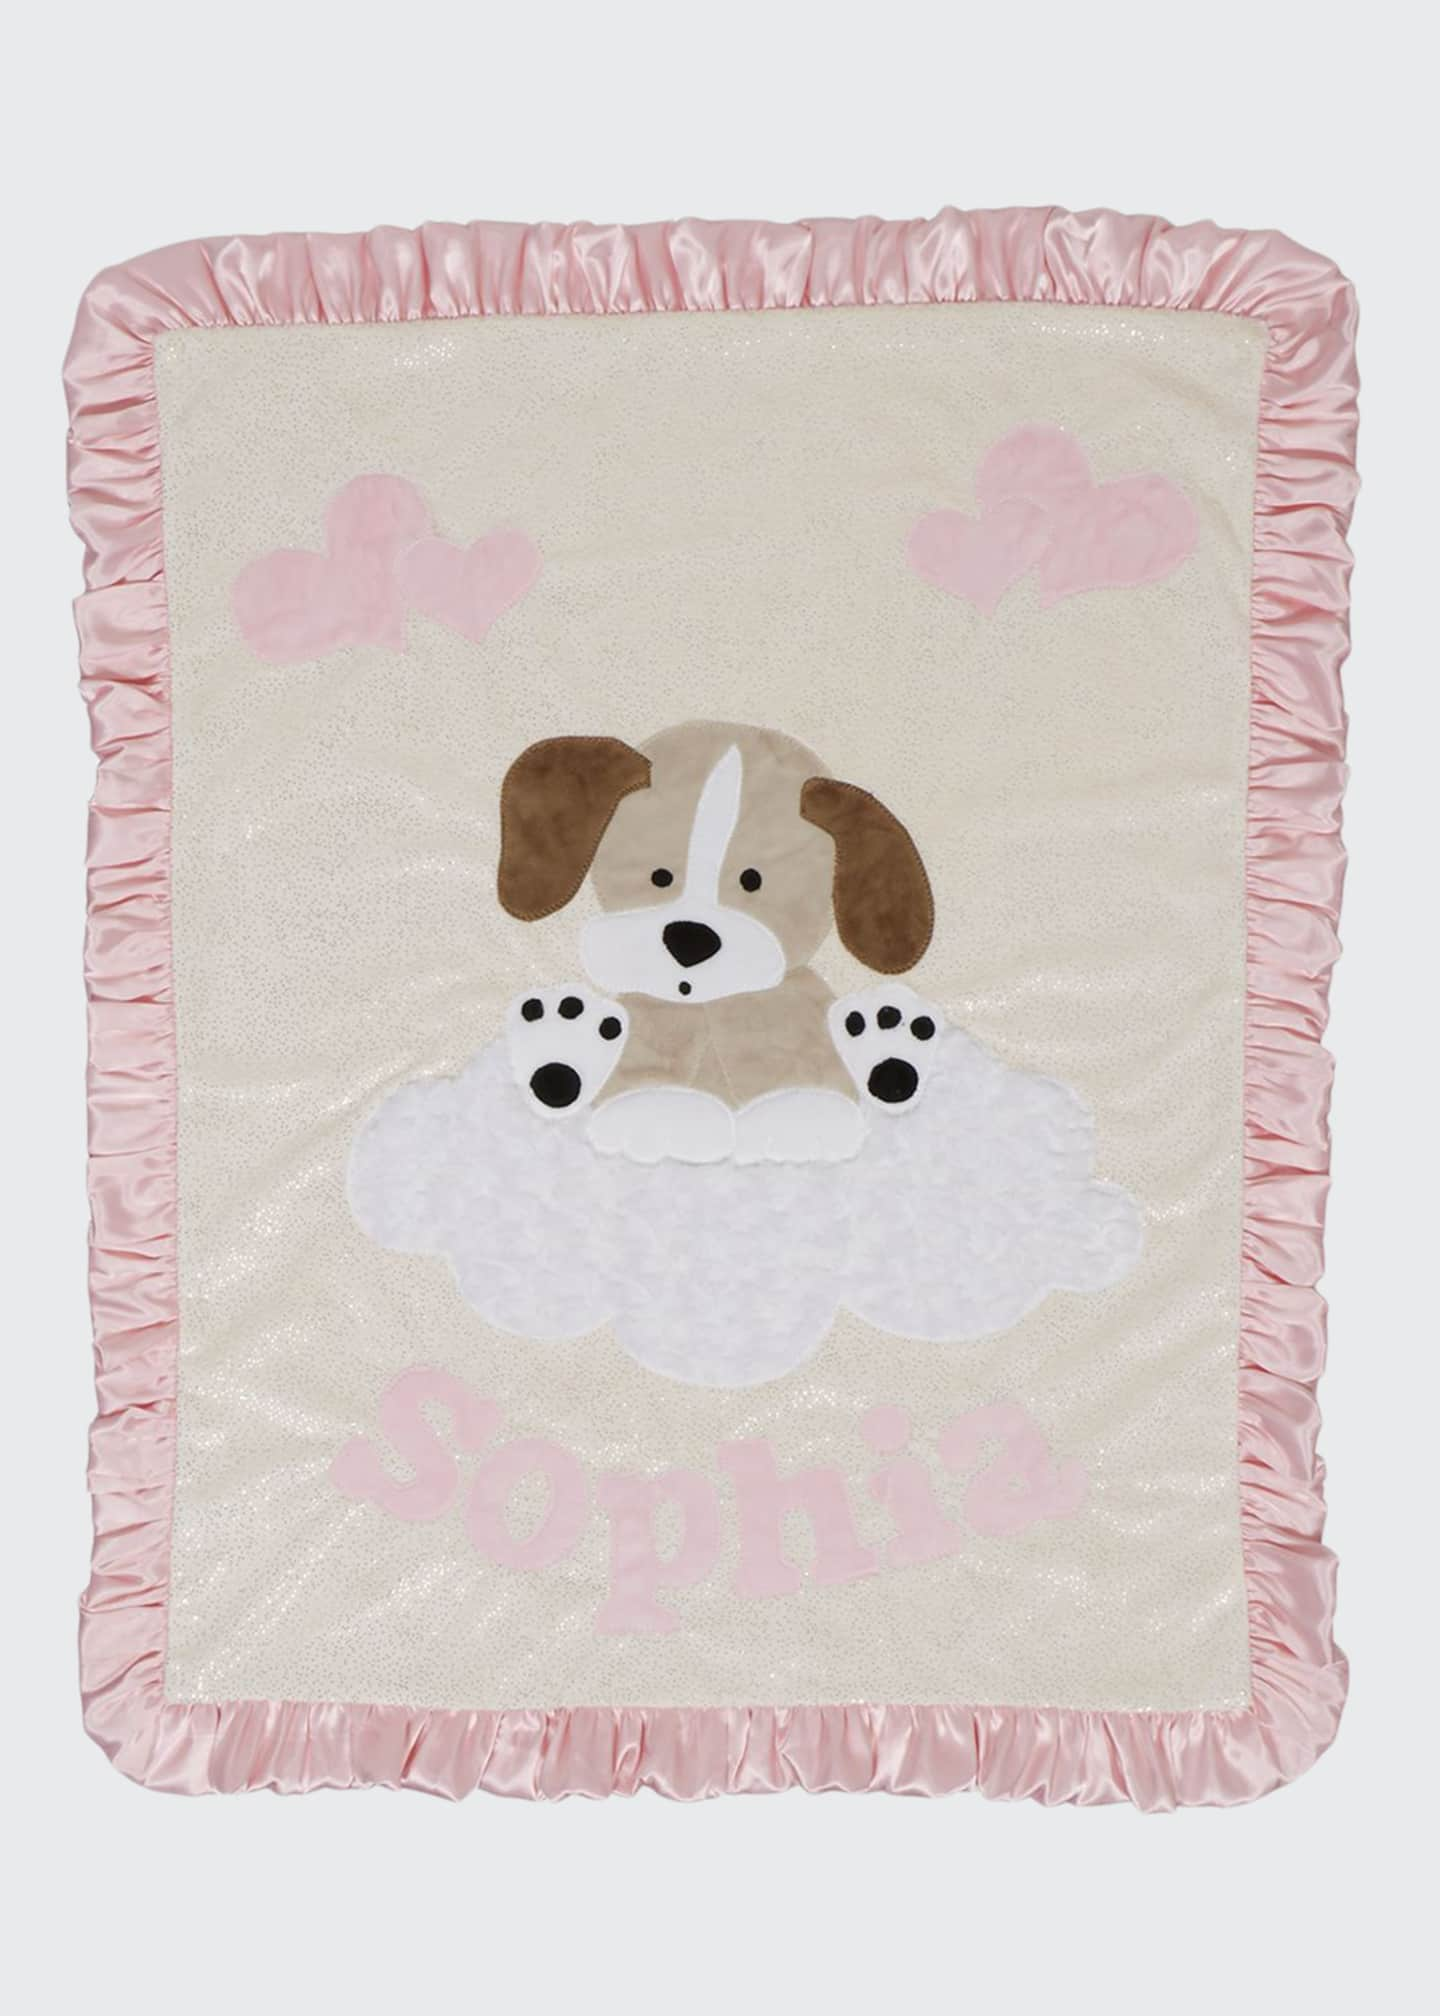 Boogie Baby Personalized Puppy Dreams Plush Blanket